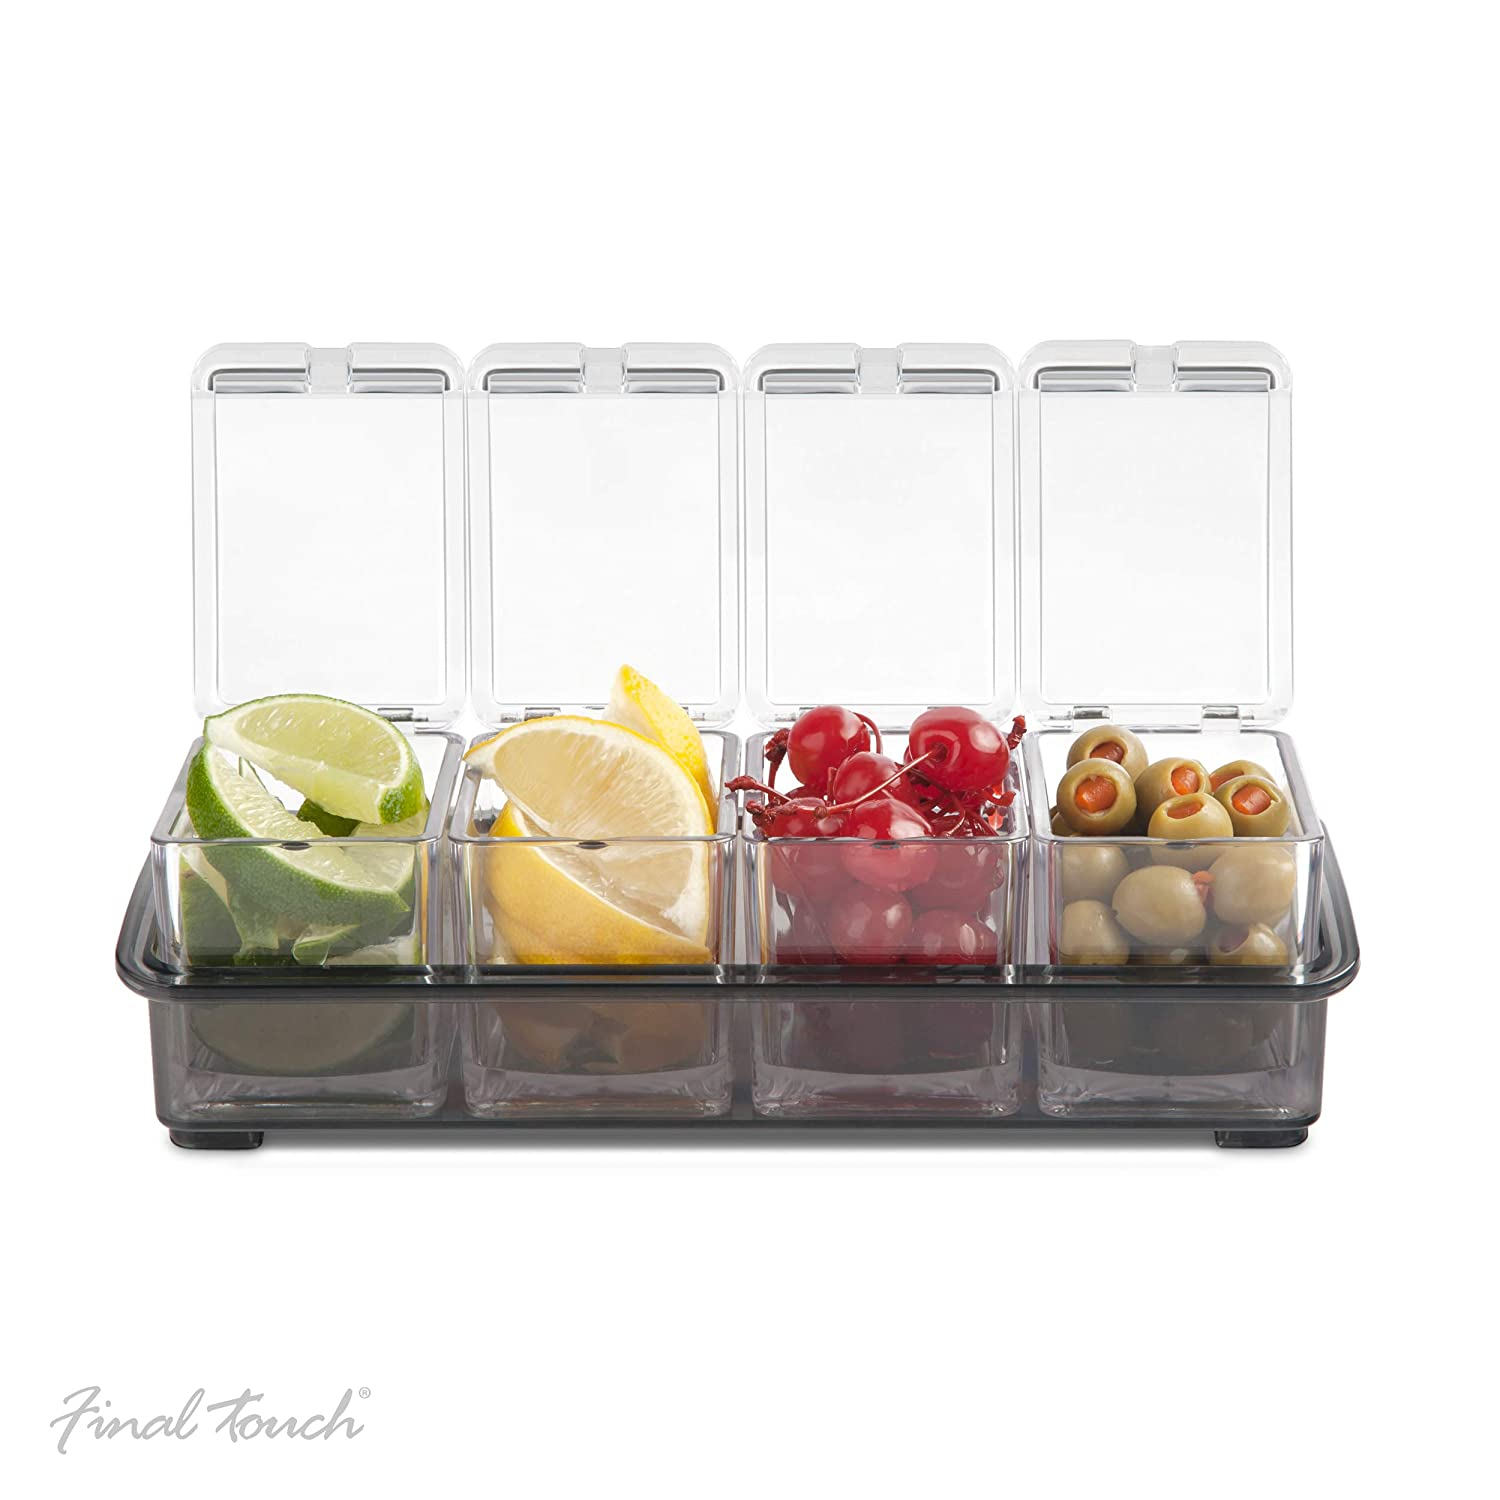 Final Touch Condiment Dispenser Holder 4 Compartment Garnish Bar Caddy 5 Piece Set Includes 4 Removable Containers And A Non-Slip Base Holds Cocktail Ingredients Cherries Olives Lemons Or Limes